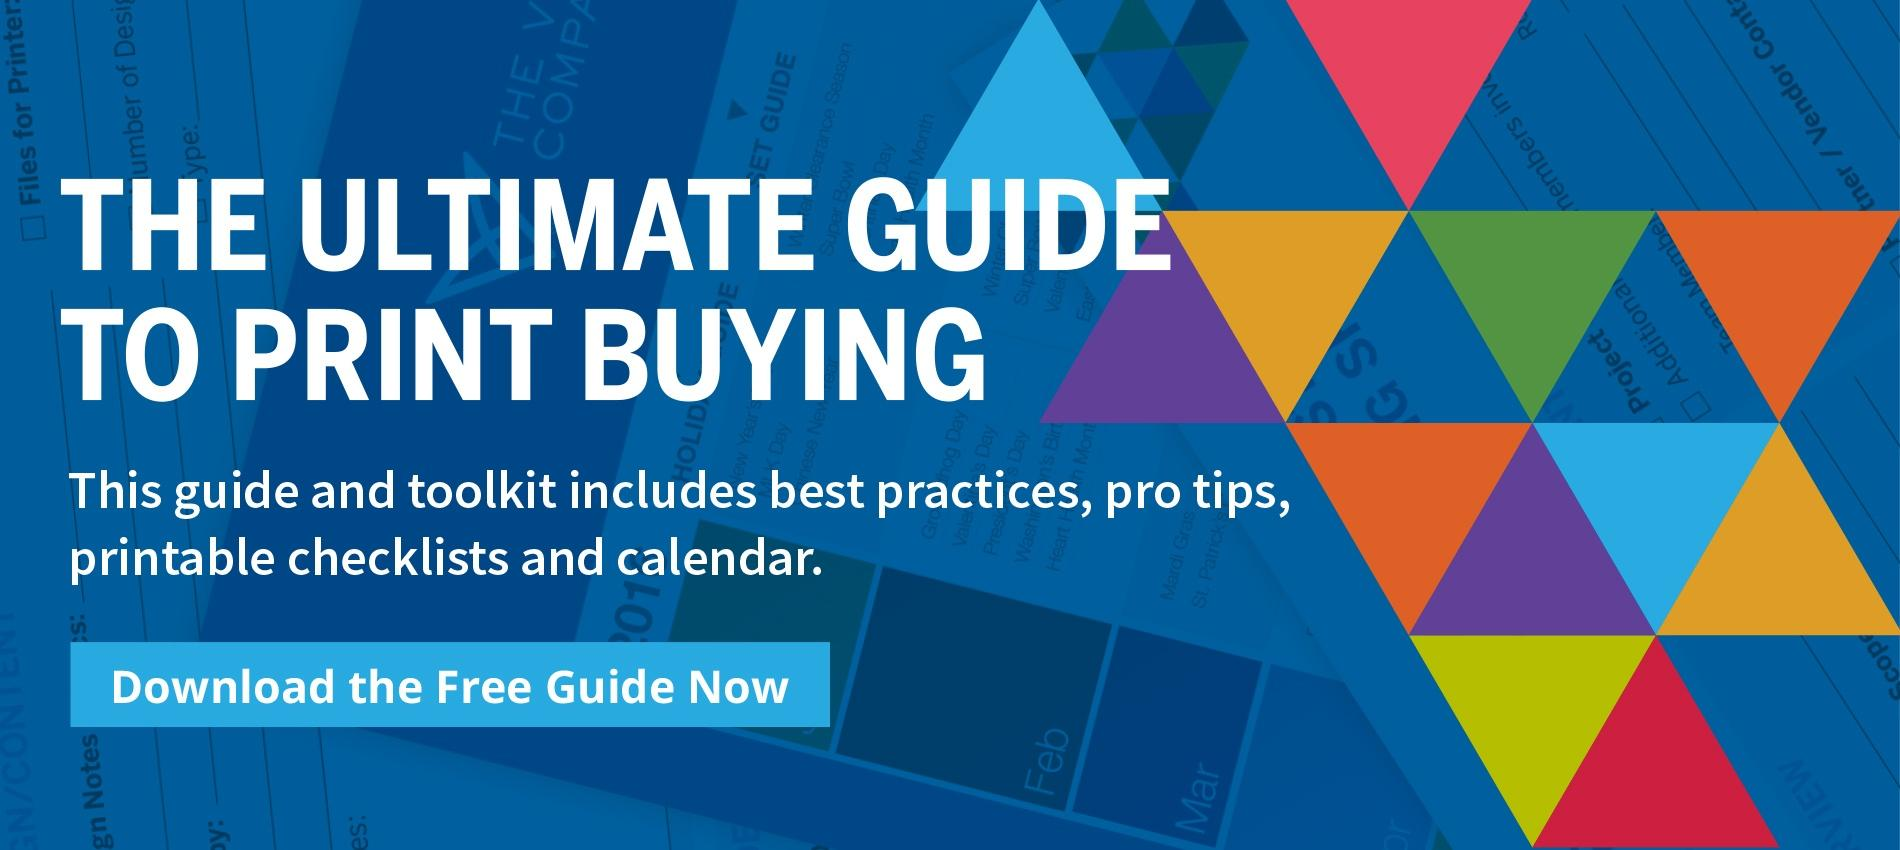 Download the Free Guide Now